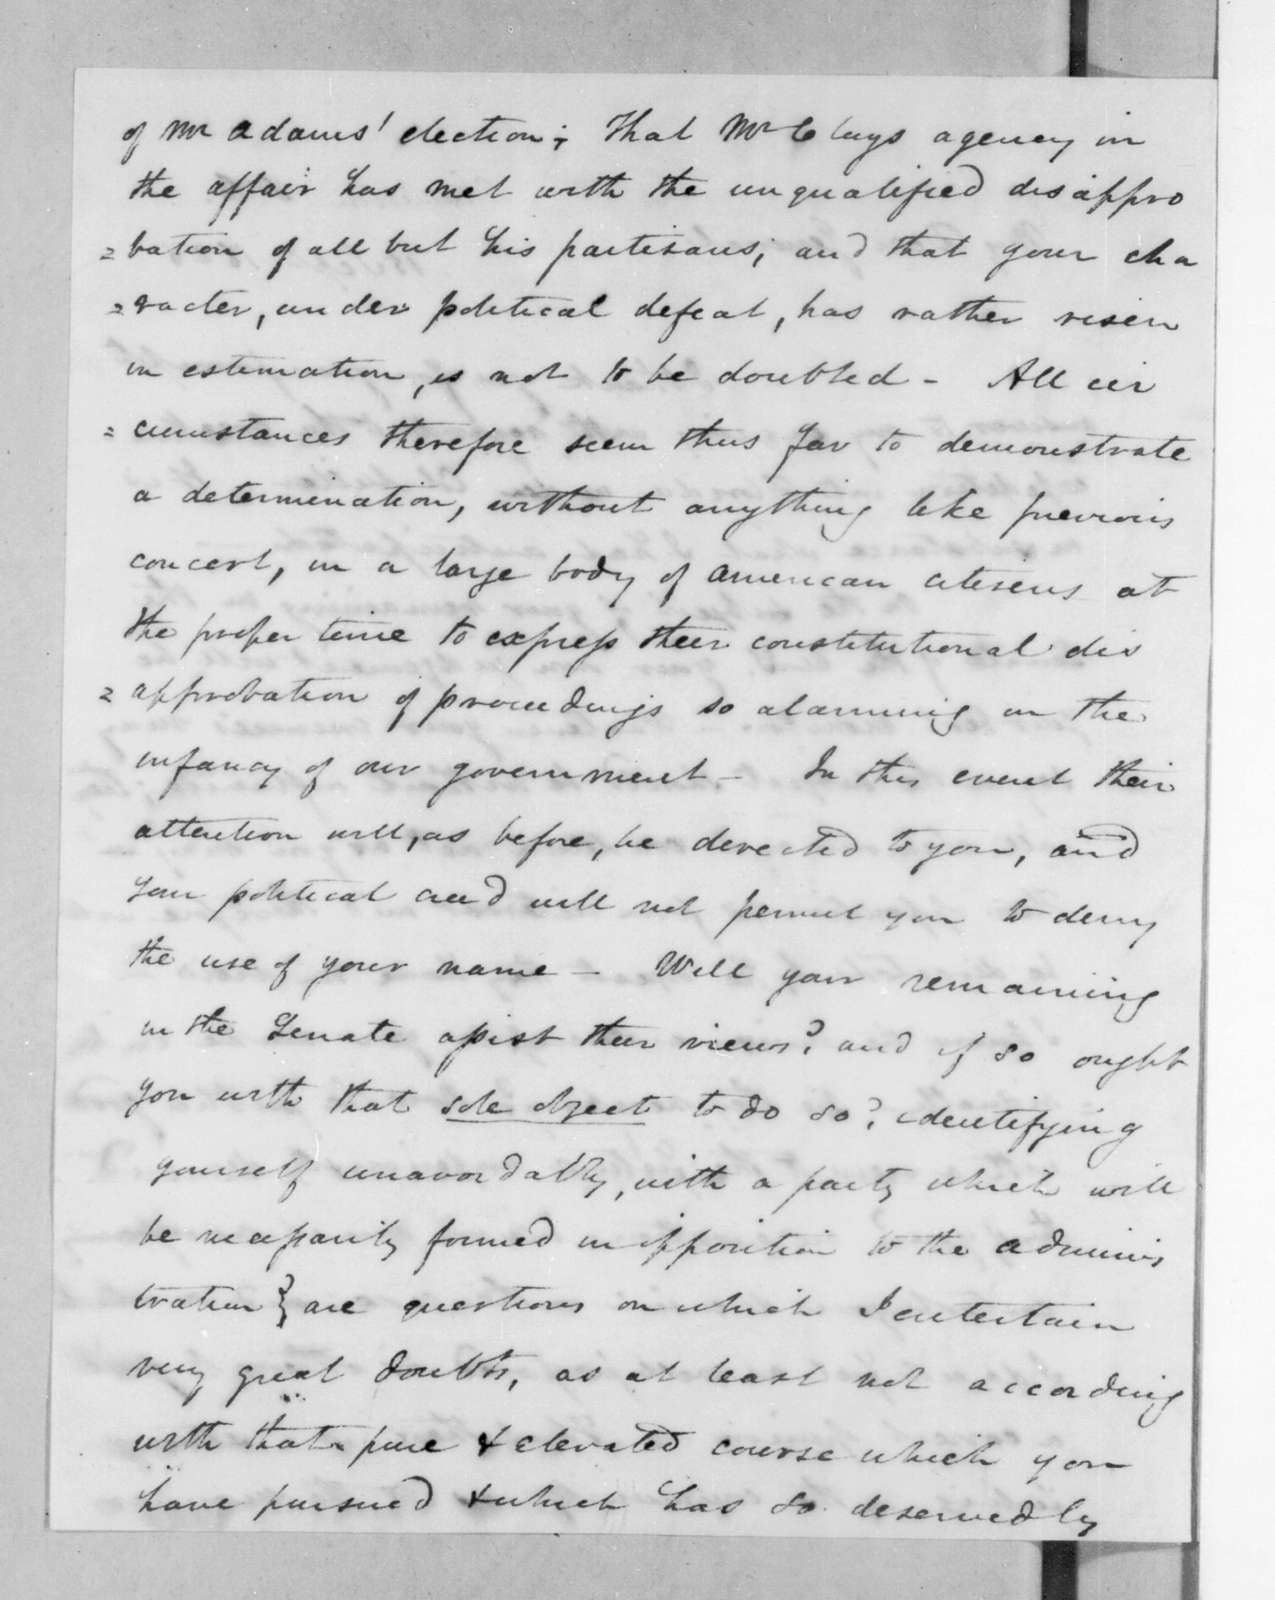 James Gadsden to Andrew Jackson, September 15, 1825